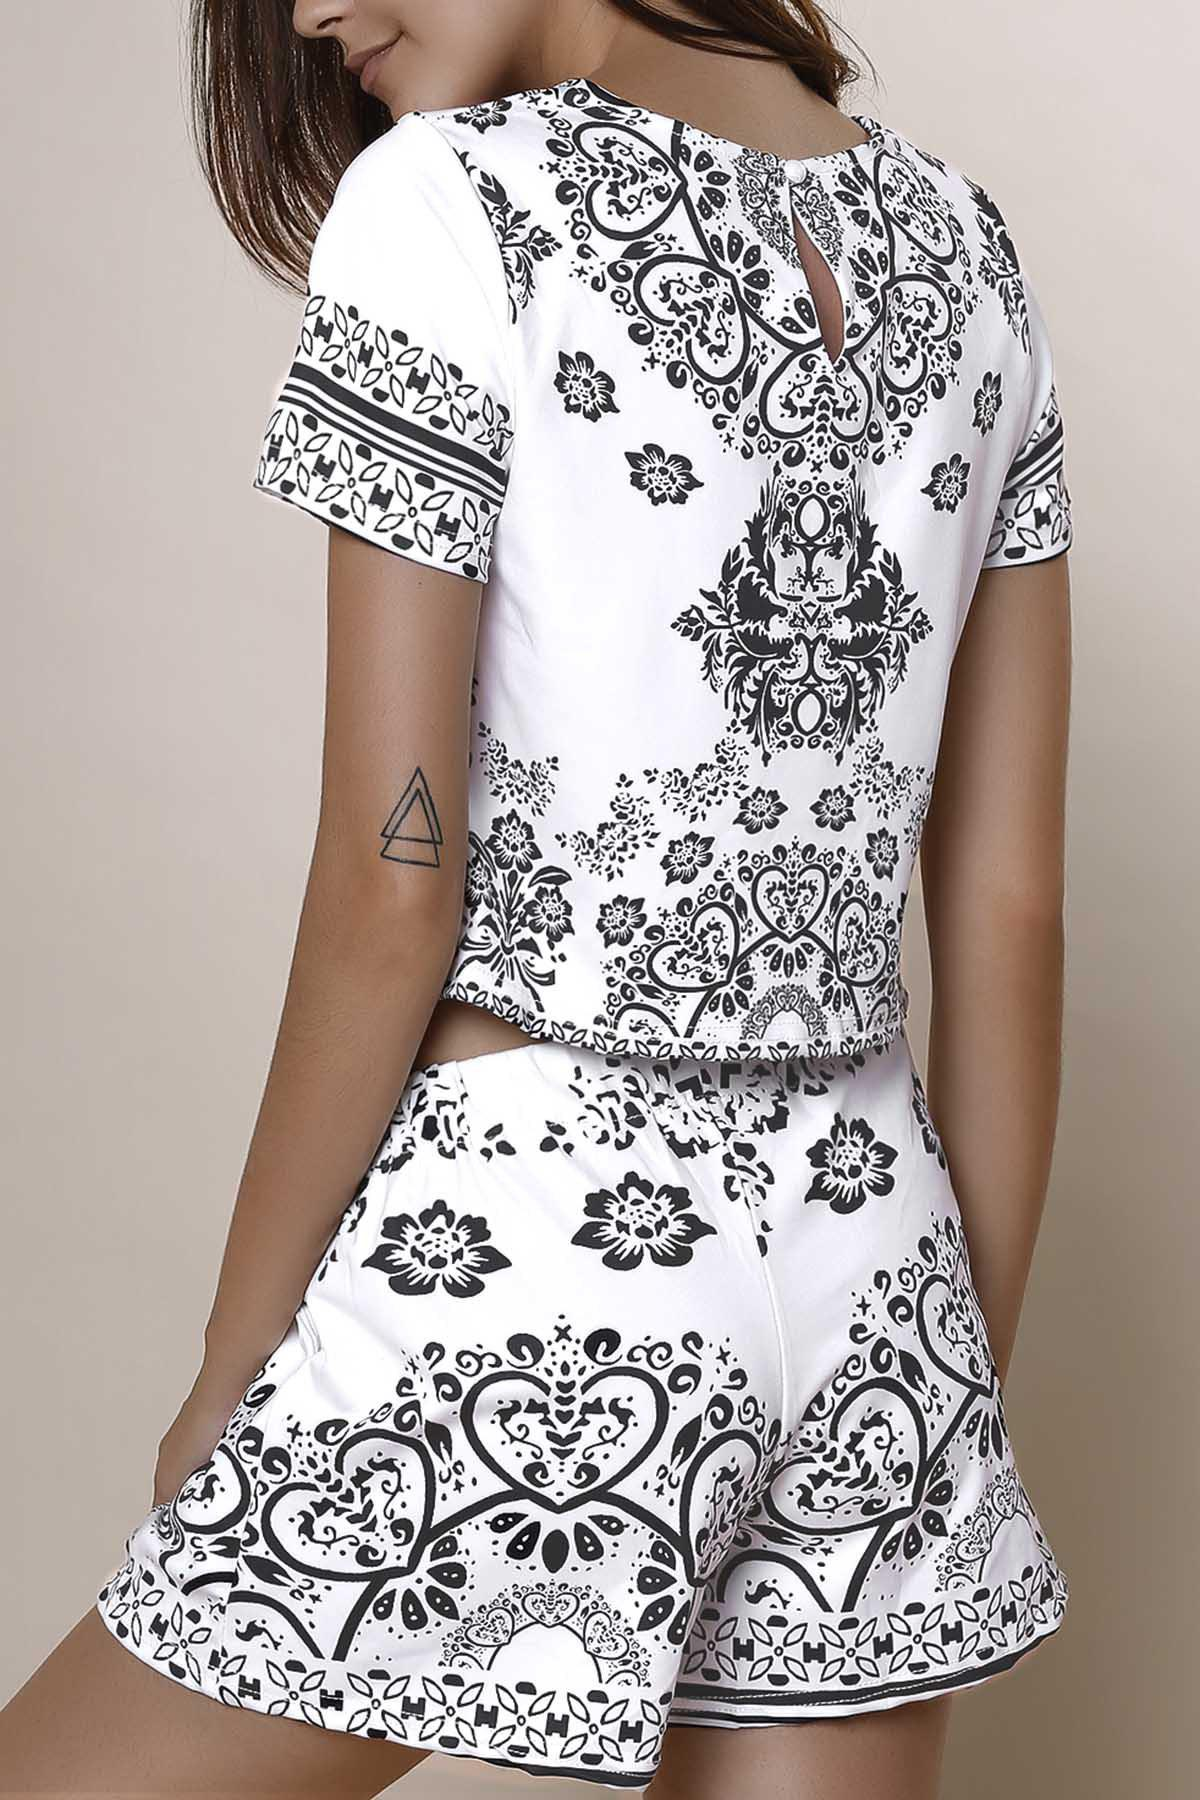 ee8112065ef5e Outfits Stylish Round Neck Short Sleeve Crop Top + Porcelain Print High-Waisted  Shorts Women s